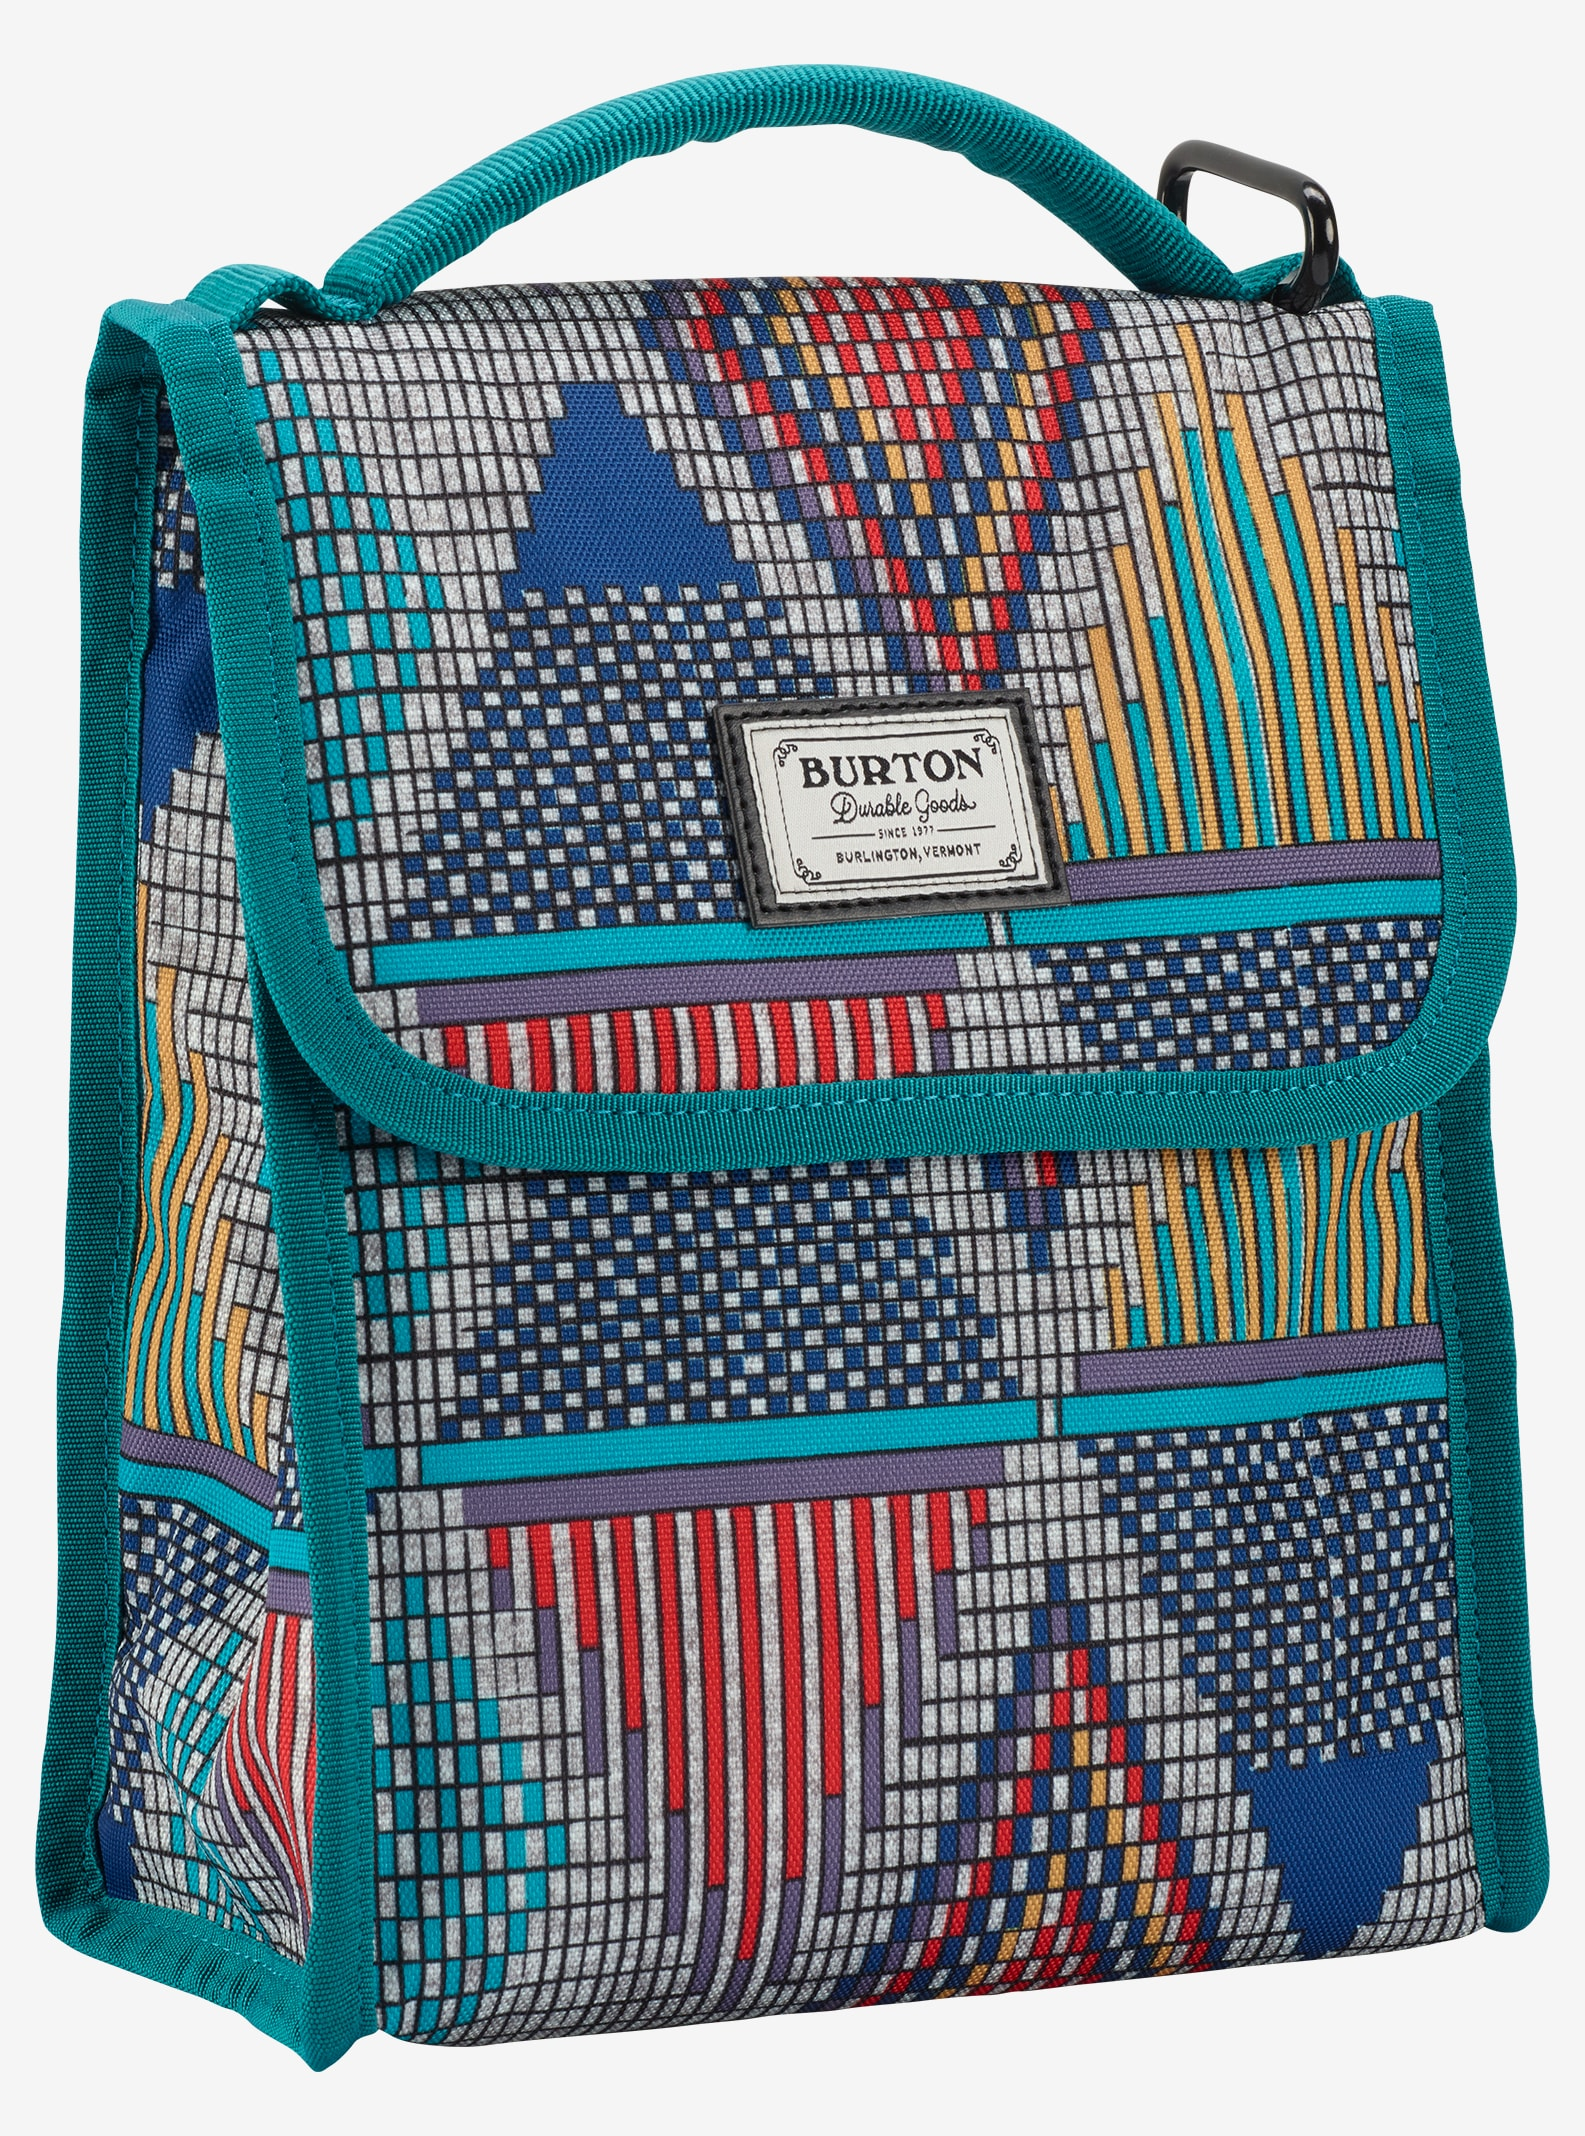 Burton Lunch Sack shown in De Geo Print